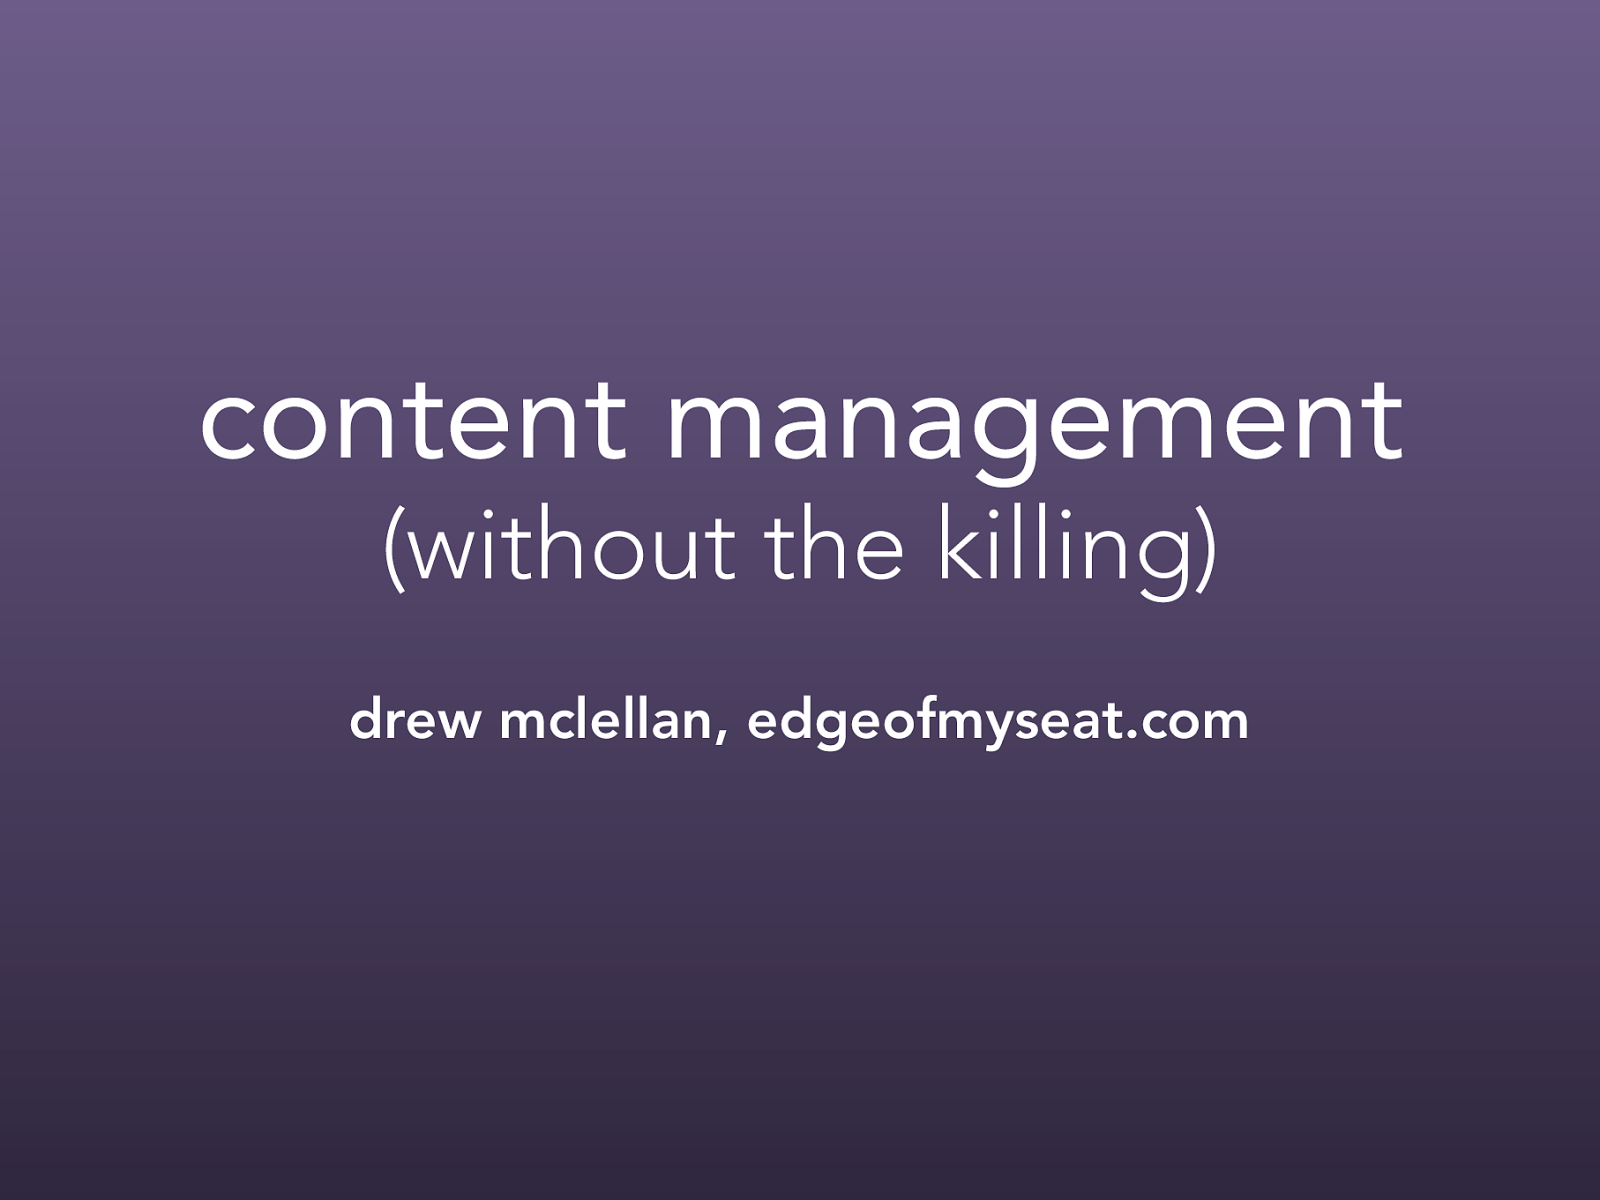 Content Management Without The Killing